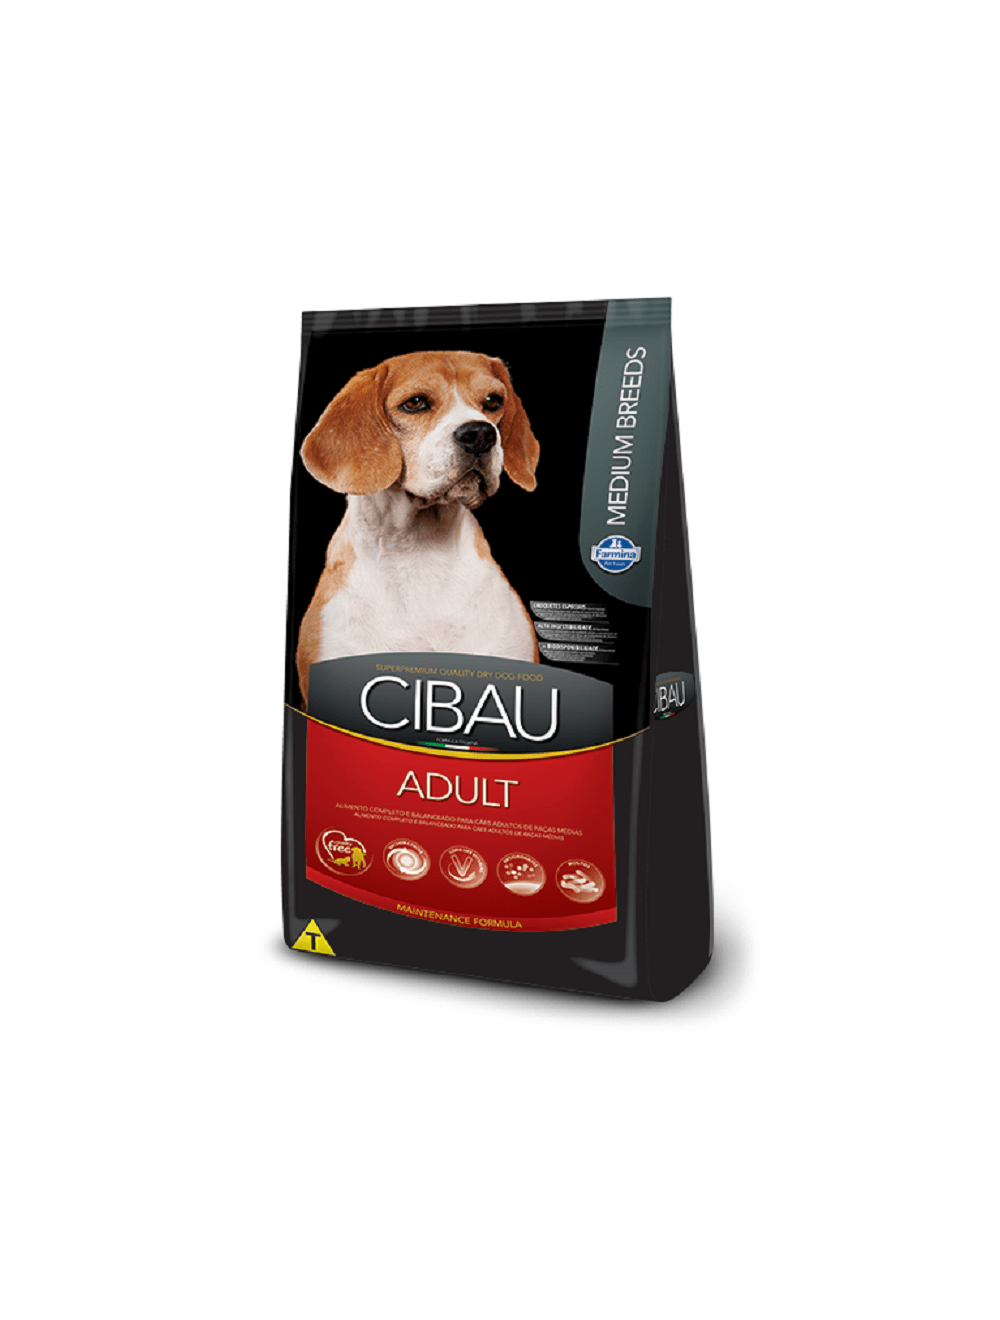 Cibau Adulto Medium Breed 25 Kg